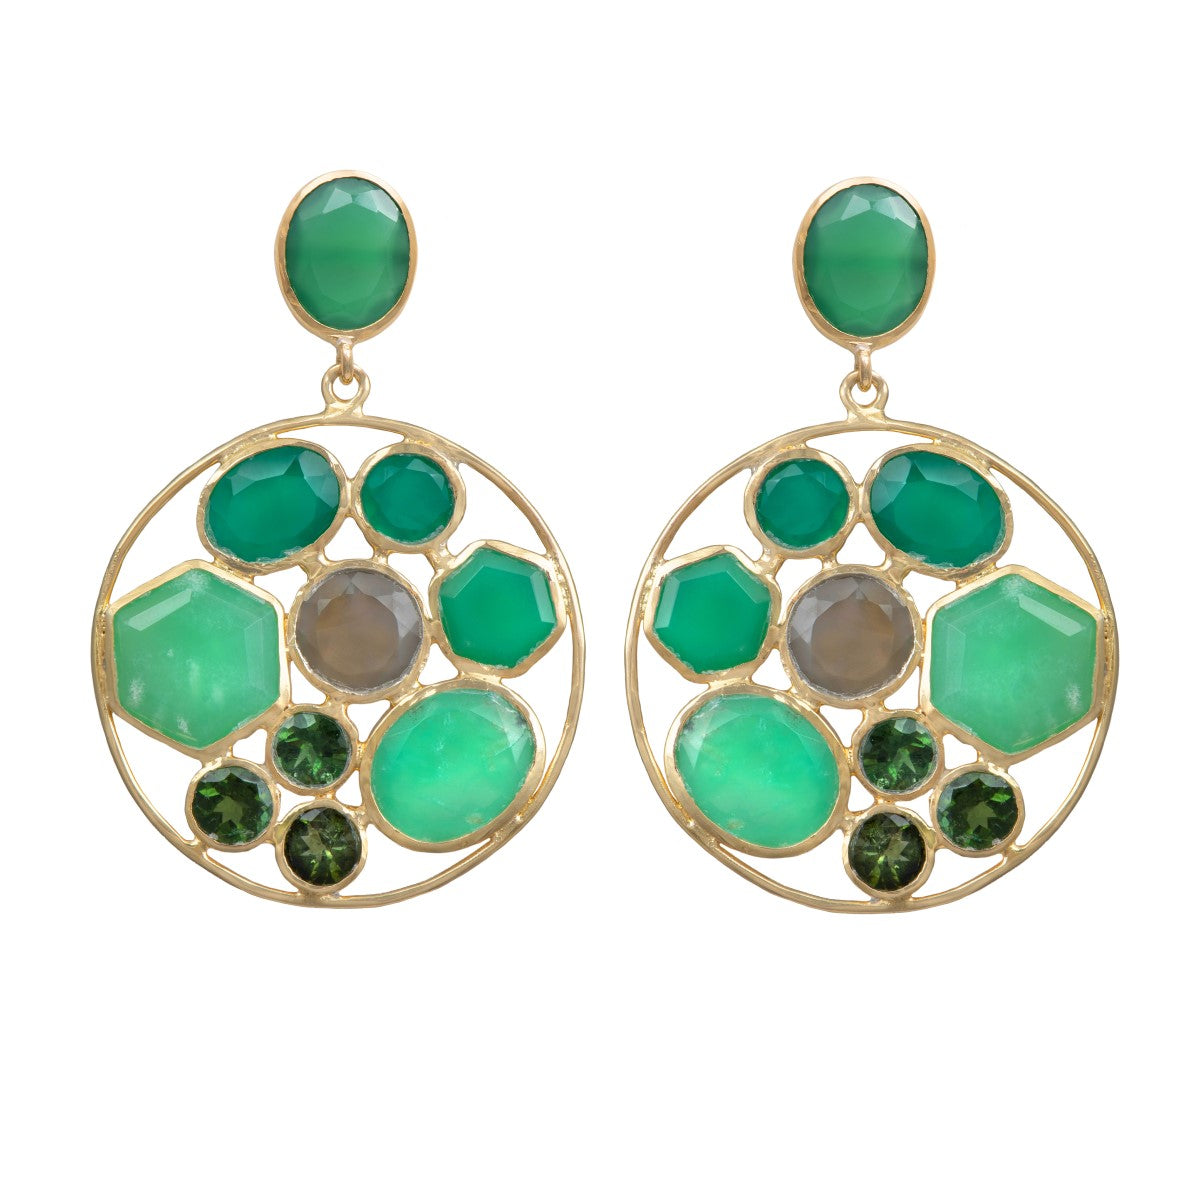 Long Gemstone Earrings with a Round Disc Drop with Stones in Gold Plated Sterling Silver - Green Chalcedony and Green Onyx